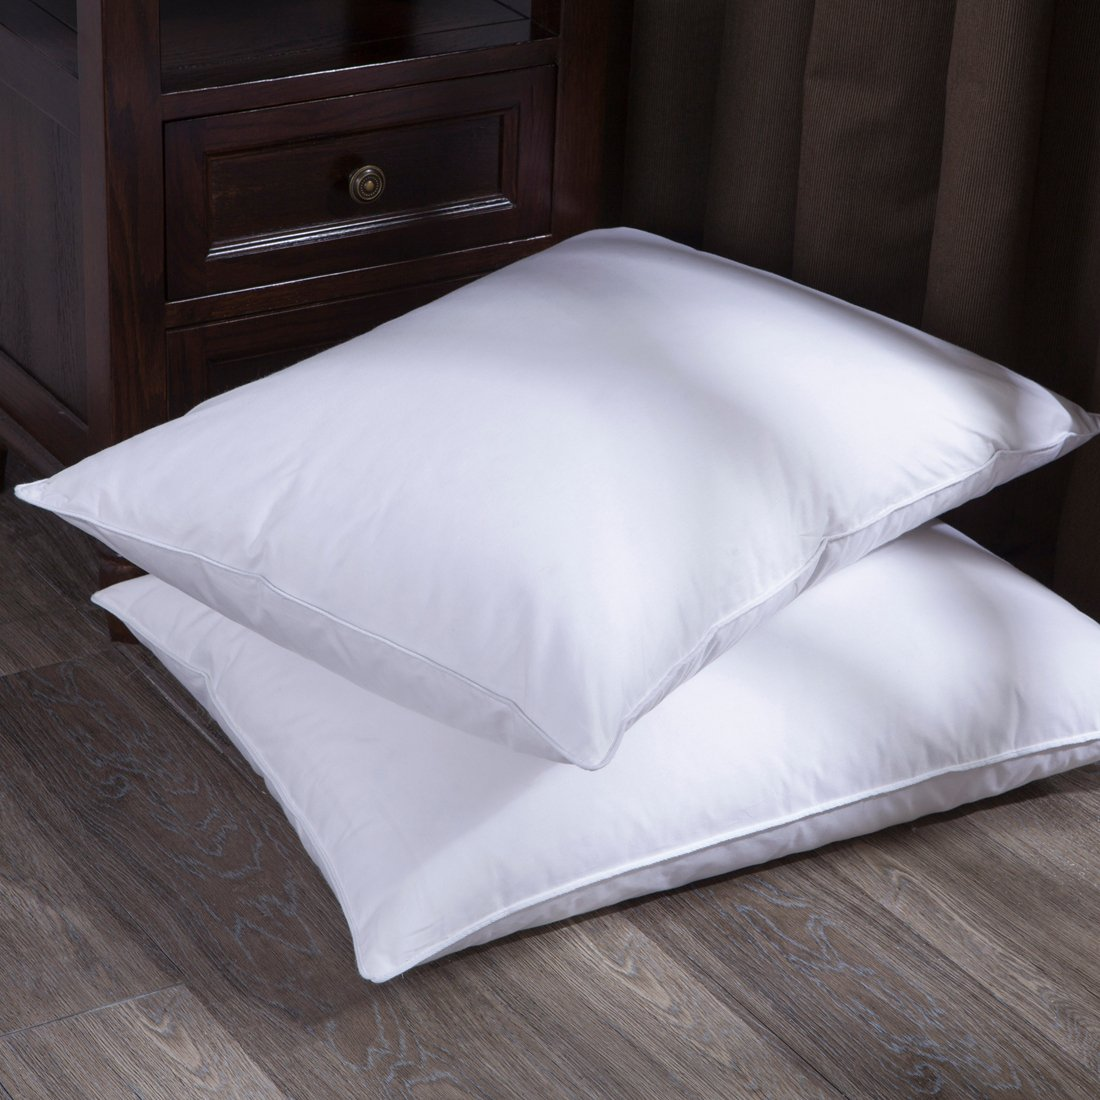 john british the firm lewis at king main pdp kingsize collection buyjohn size pillow rsp medium goose down online ultimate